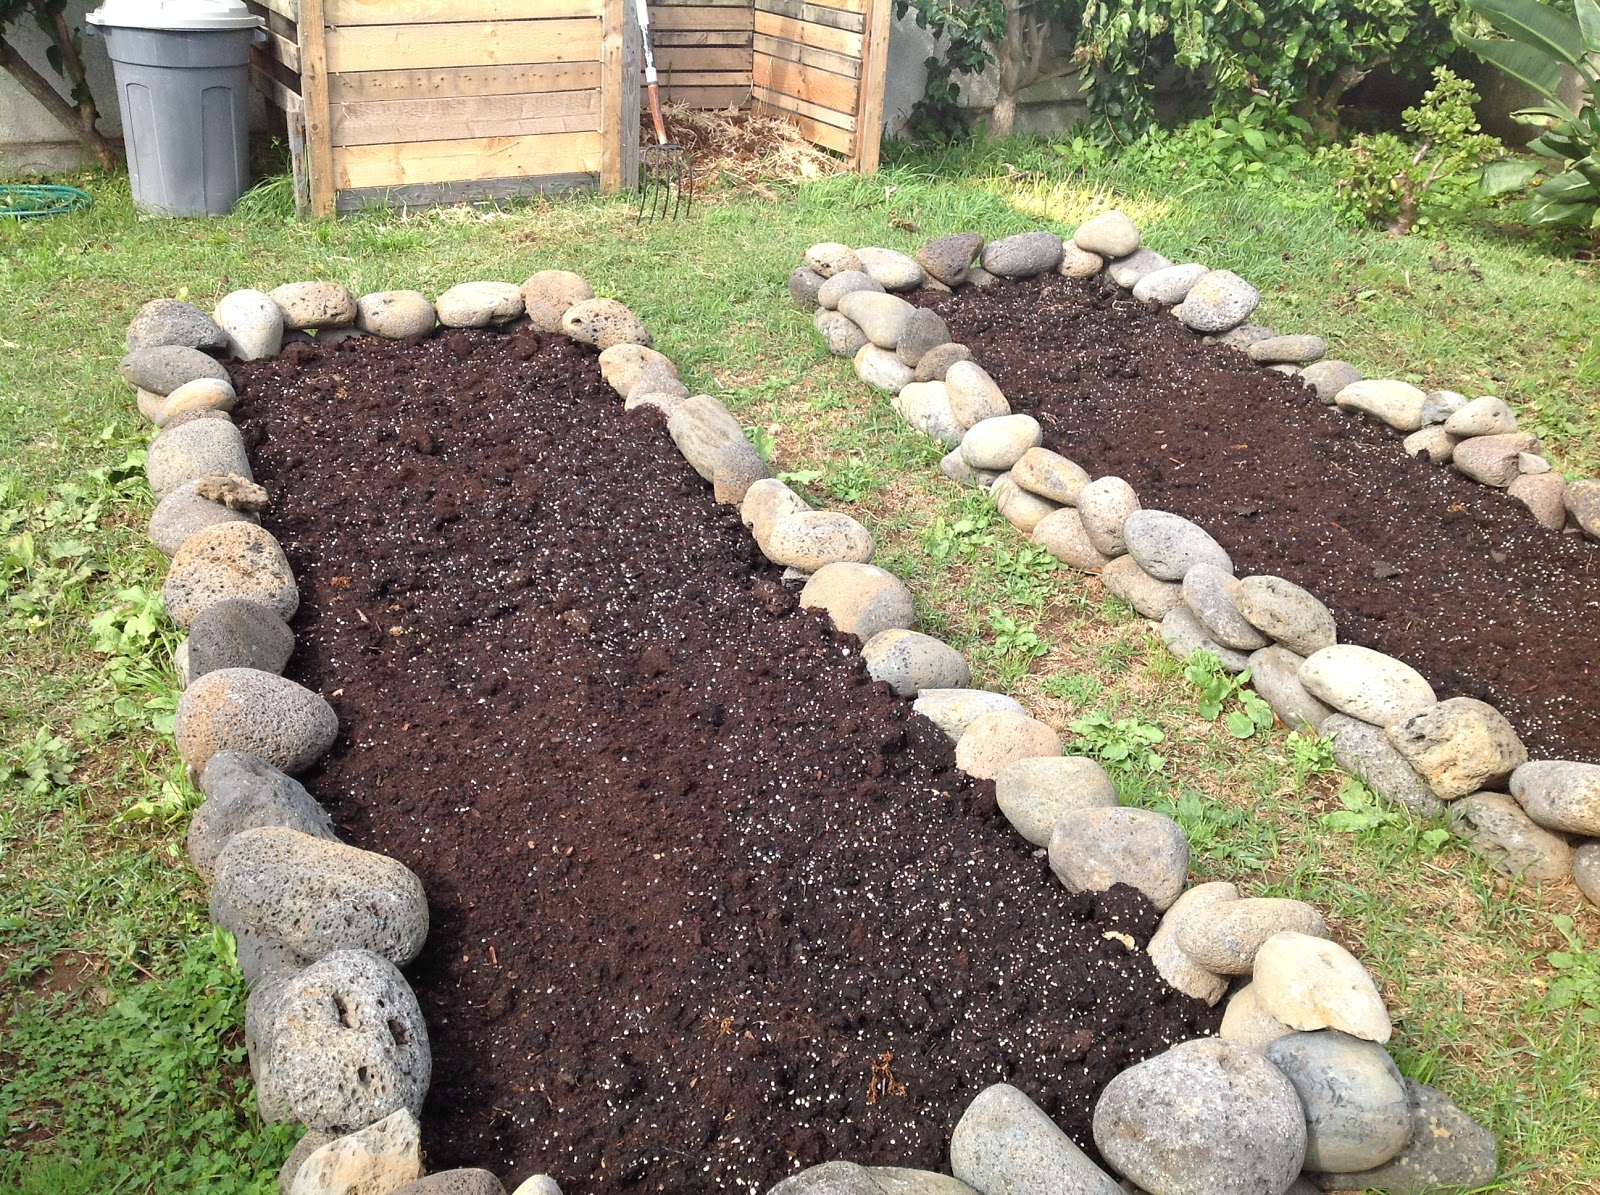 Temperate Climate Permaculture How I Spent My Sunday